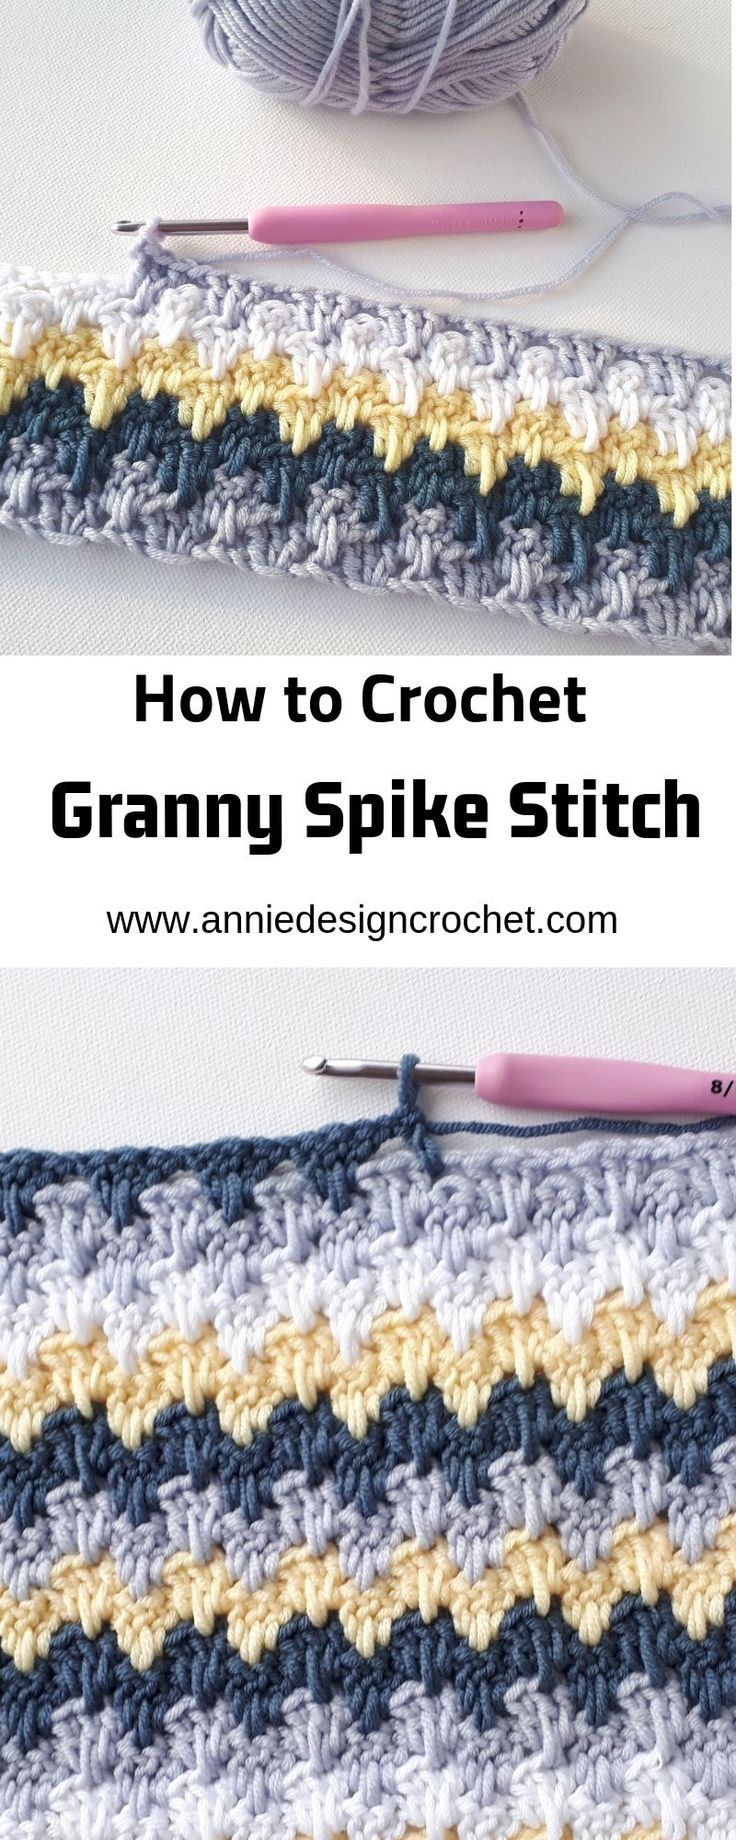 step by step crochet stitch tutorial for granny spike stitch. Easy pattern perfe...